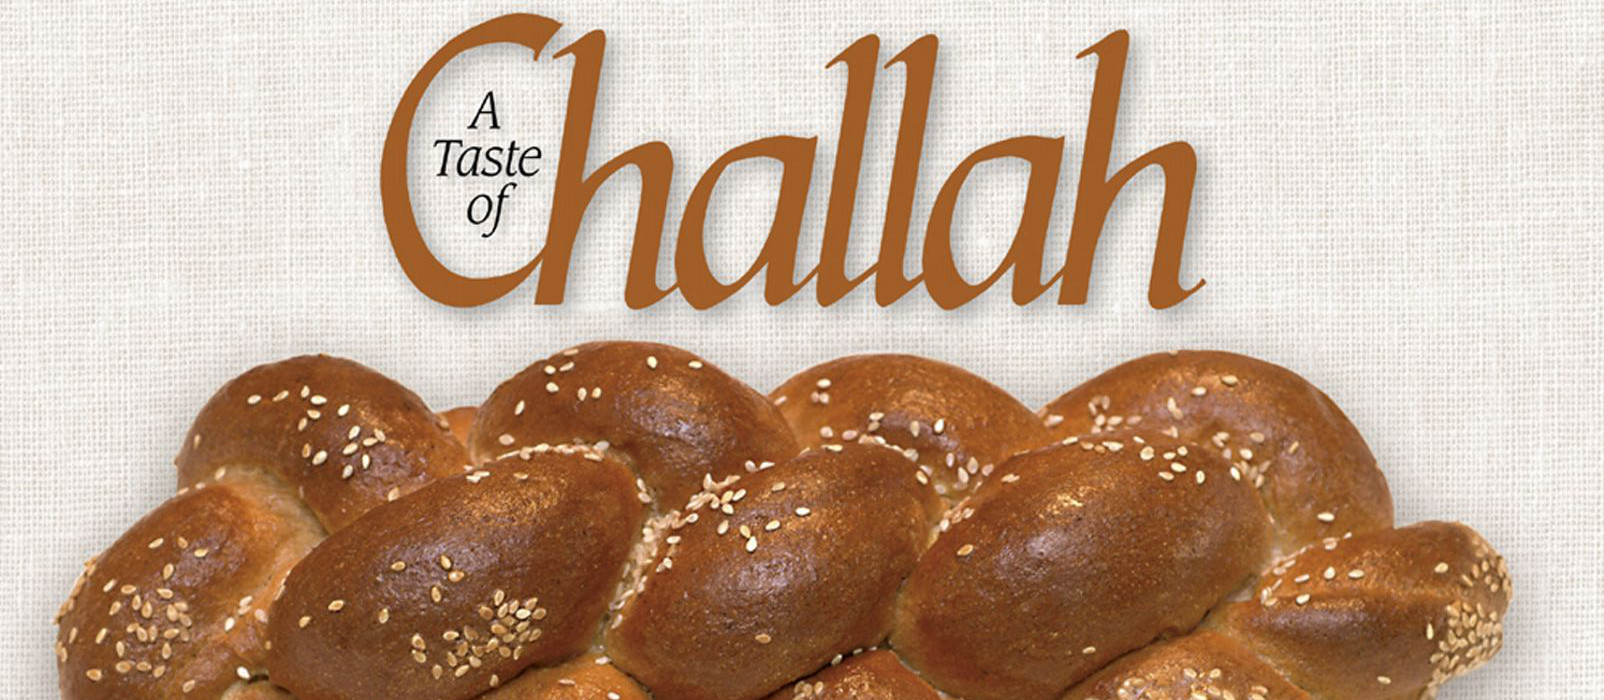 Taste-of-Challah-front-bookcover-croppped-2